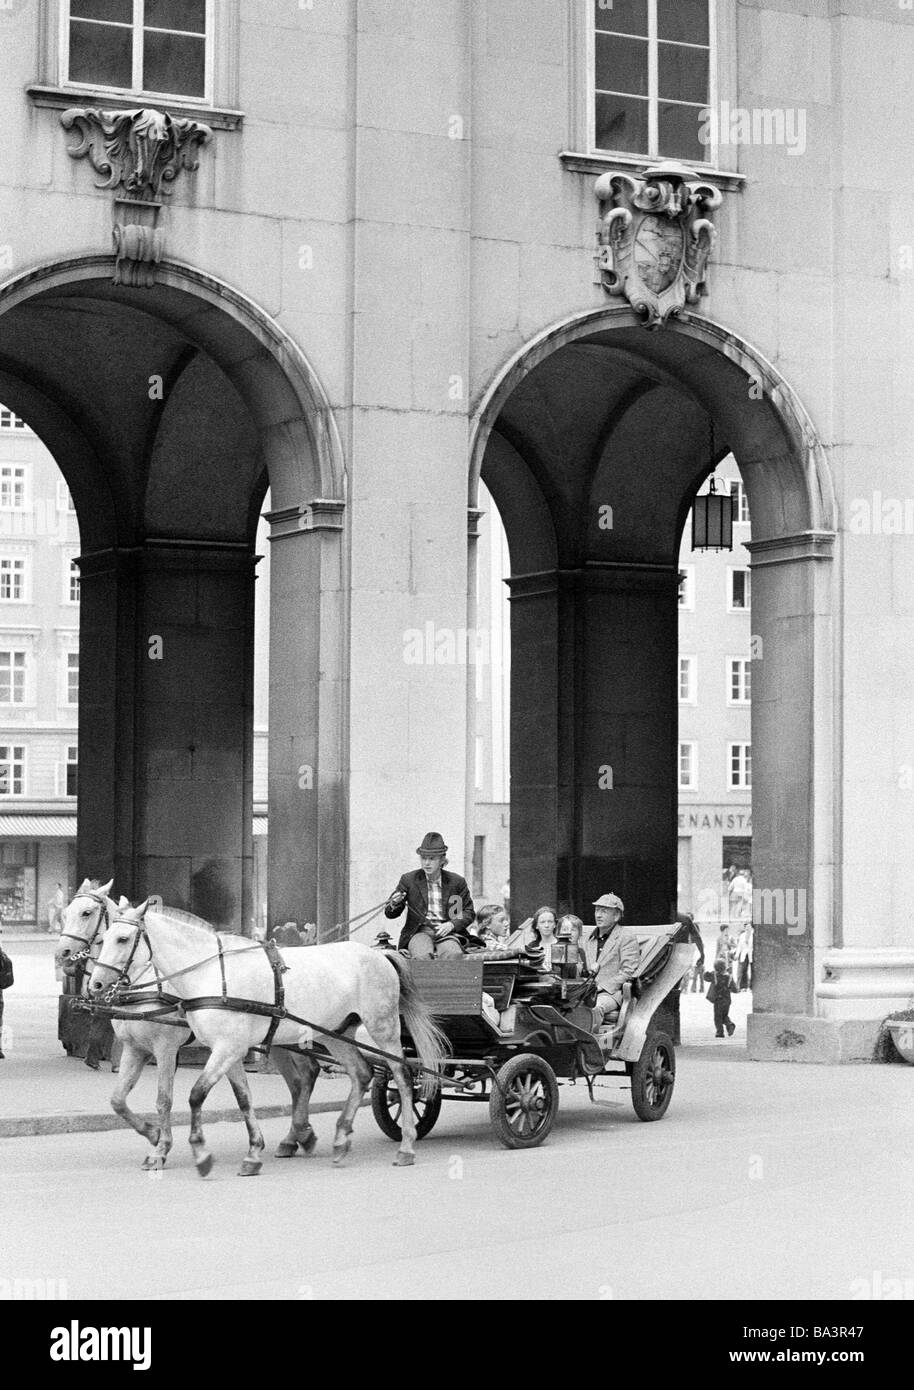 Seventies, black and white photo, holidays, tourism, hackney carriage, horse-drawn carriage with tourists, Austria, - Stock Image